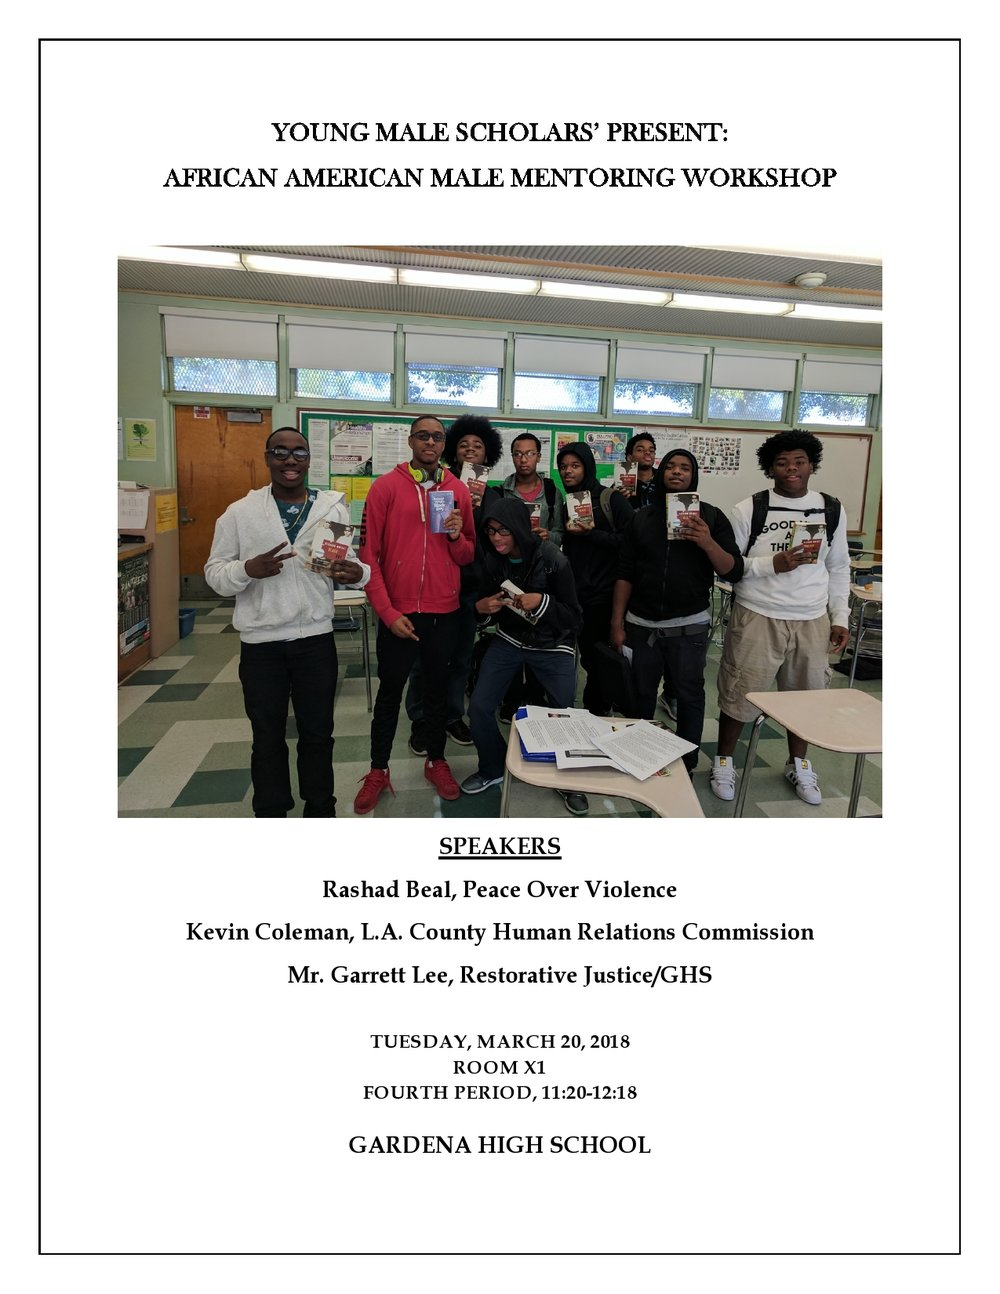 Black male workshop flyer 2018.jpg